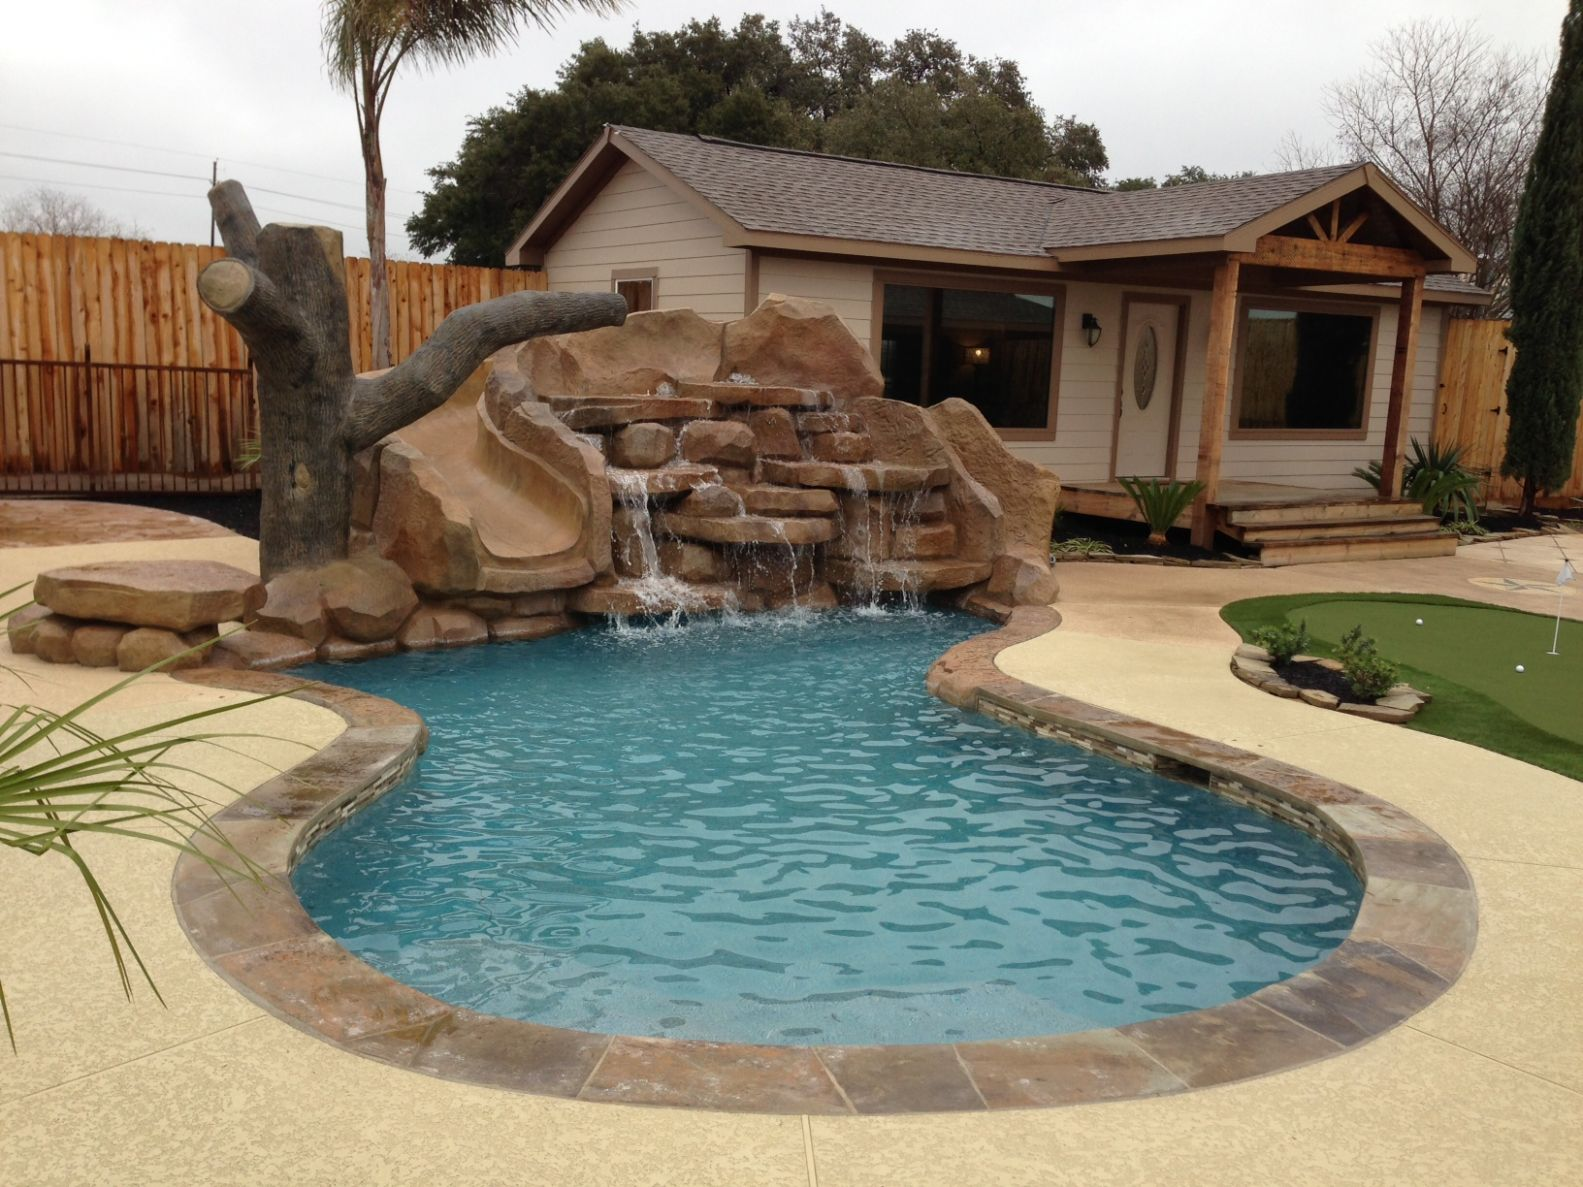 Pool House Designs With Outdoor Kitchen Squire Design Modern Home ..